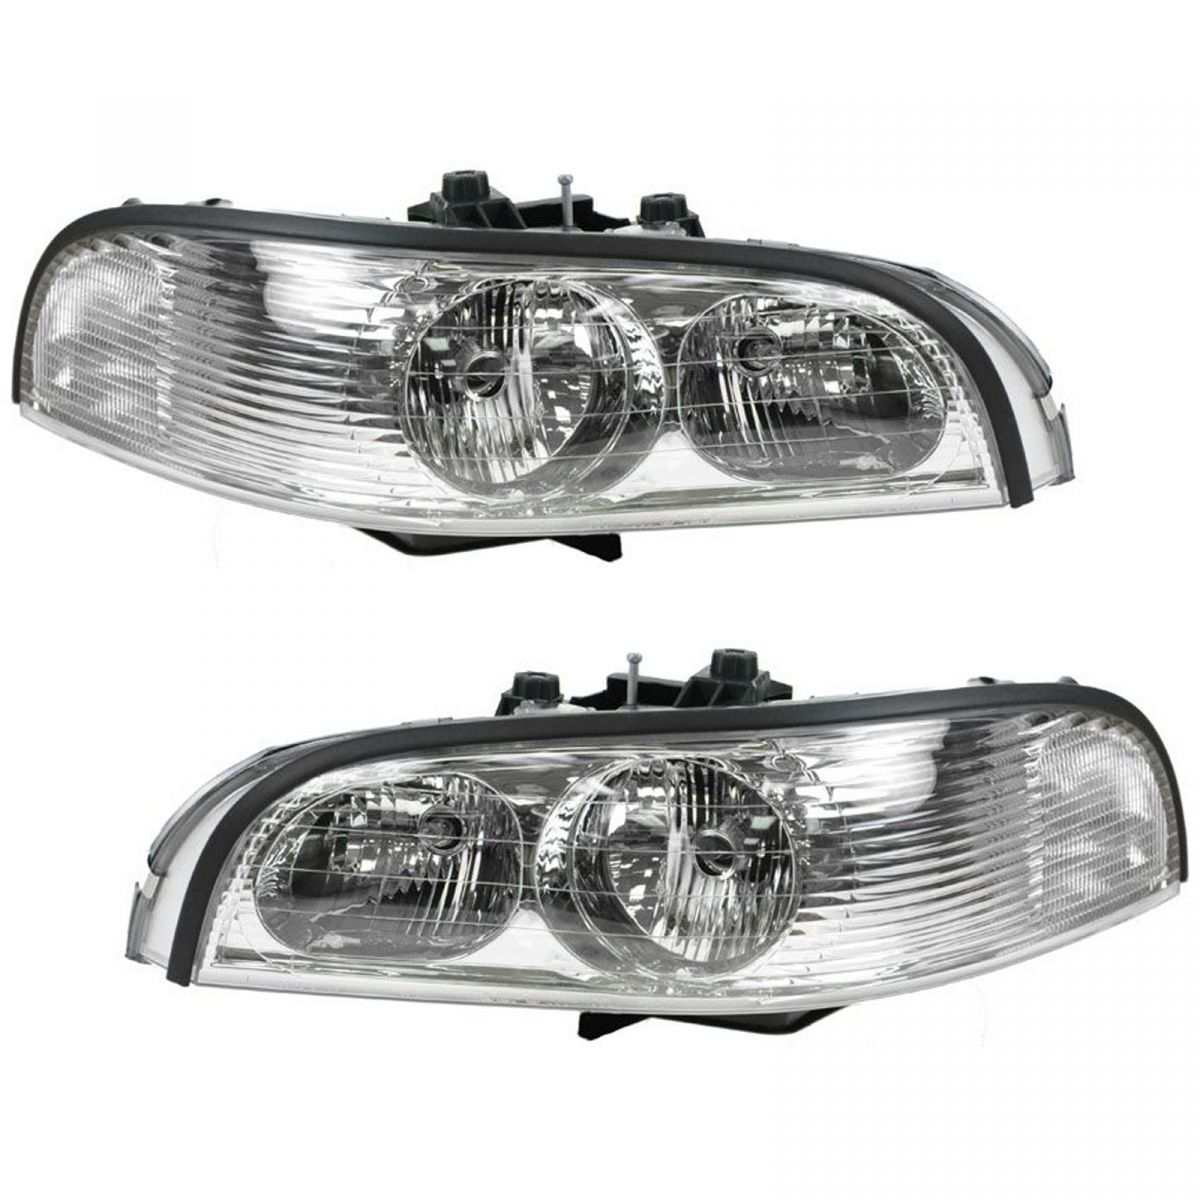 headlights headlamps left right pair set for 97 05 buick. Black Bedroom Furniture Sets. Home Design Ideas